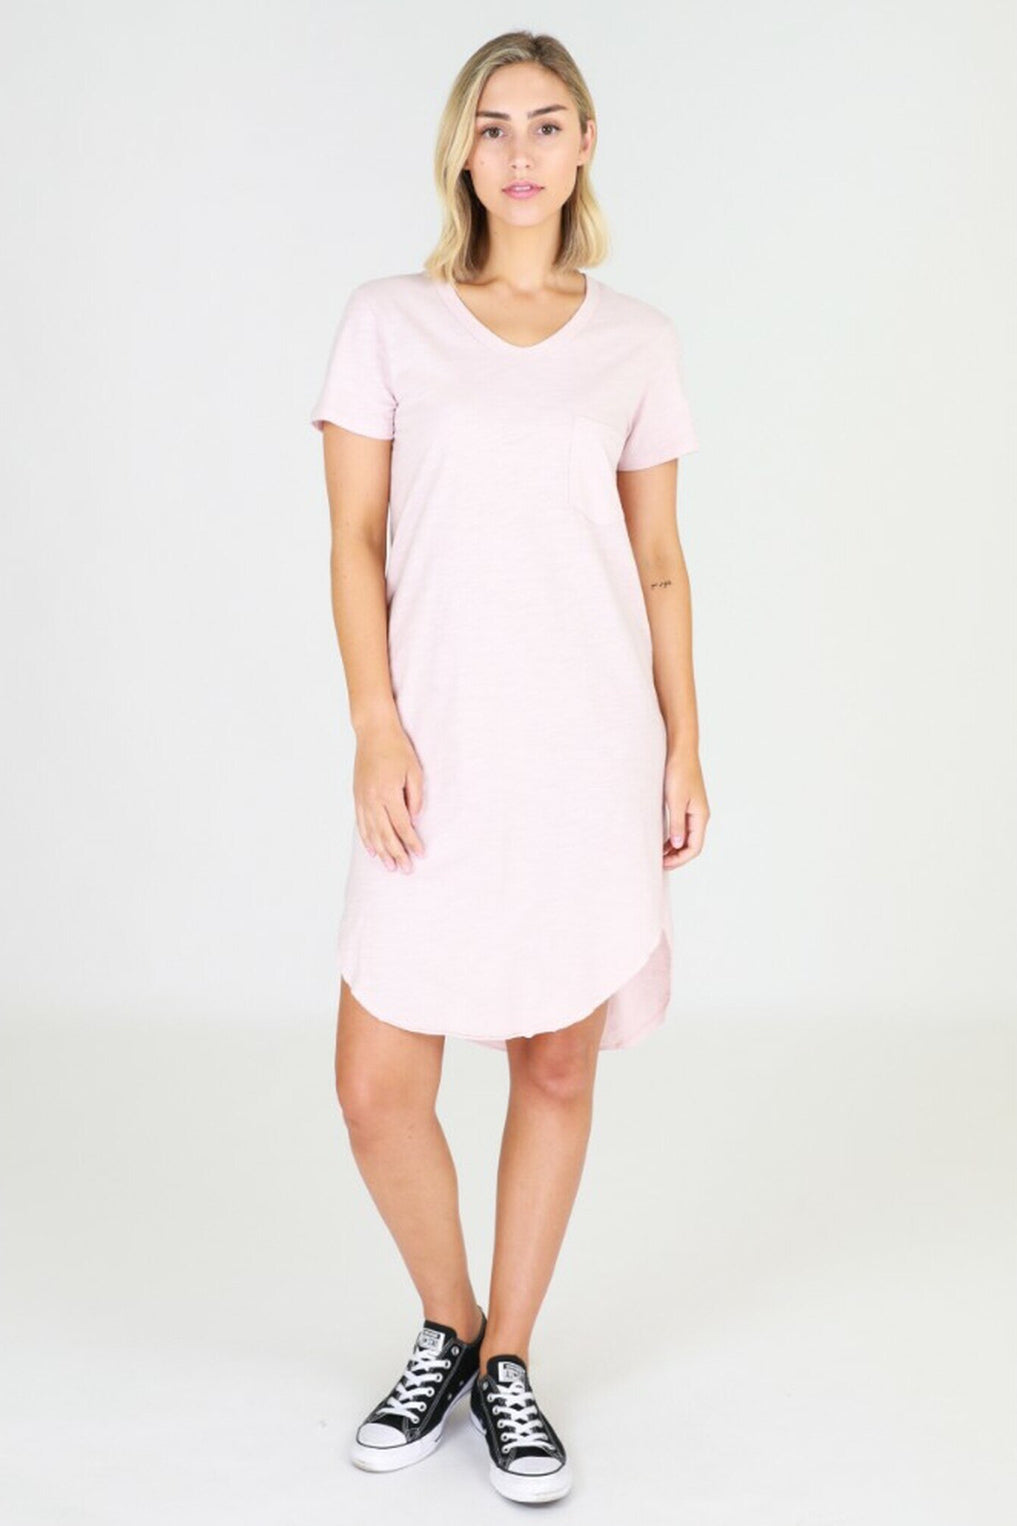 3rd Story Milly Dress BLUSH MARLE